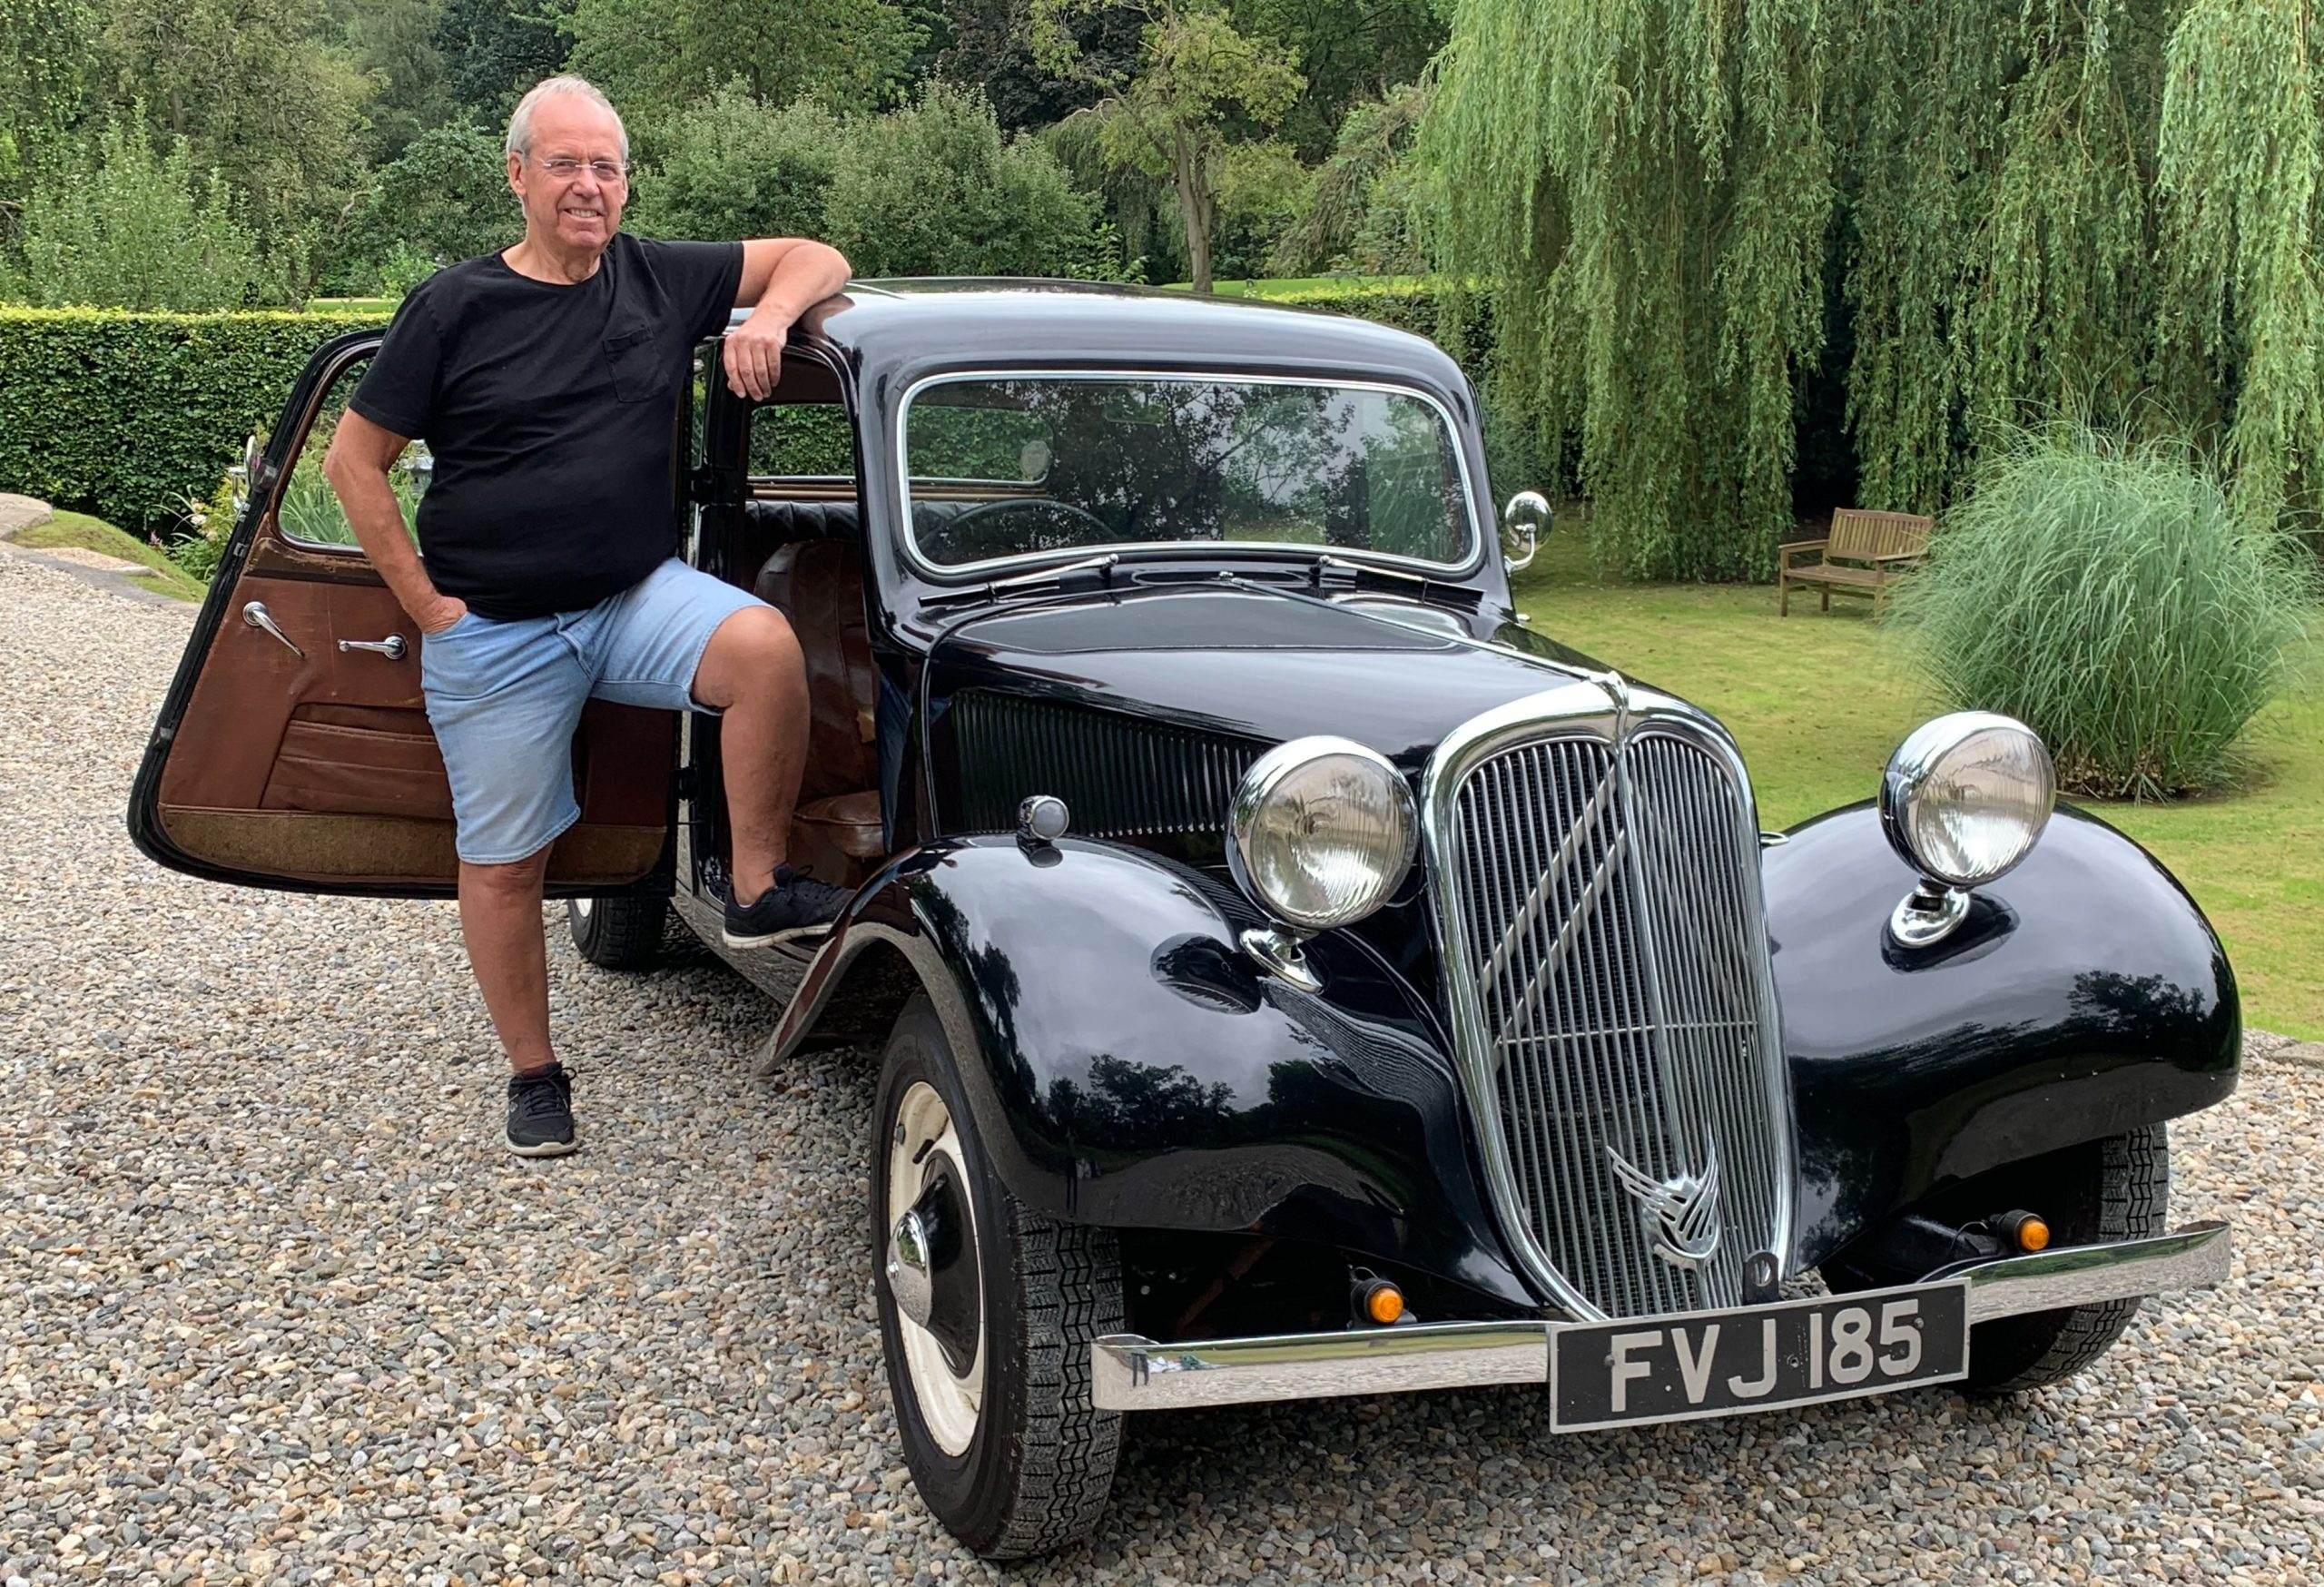 Your Classics: Mike McDonald and his Citroën Traction Avant once owned by Dave Davies of the Kinks